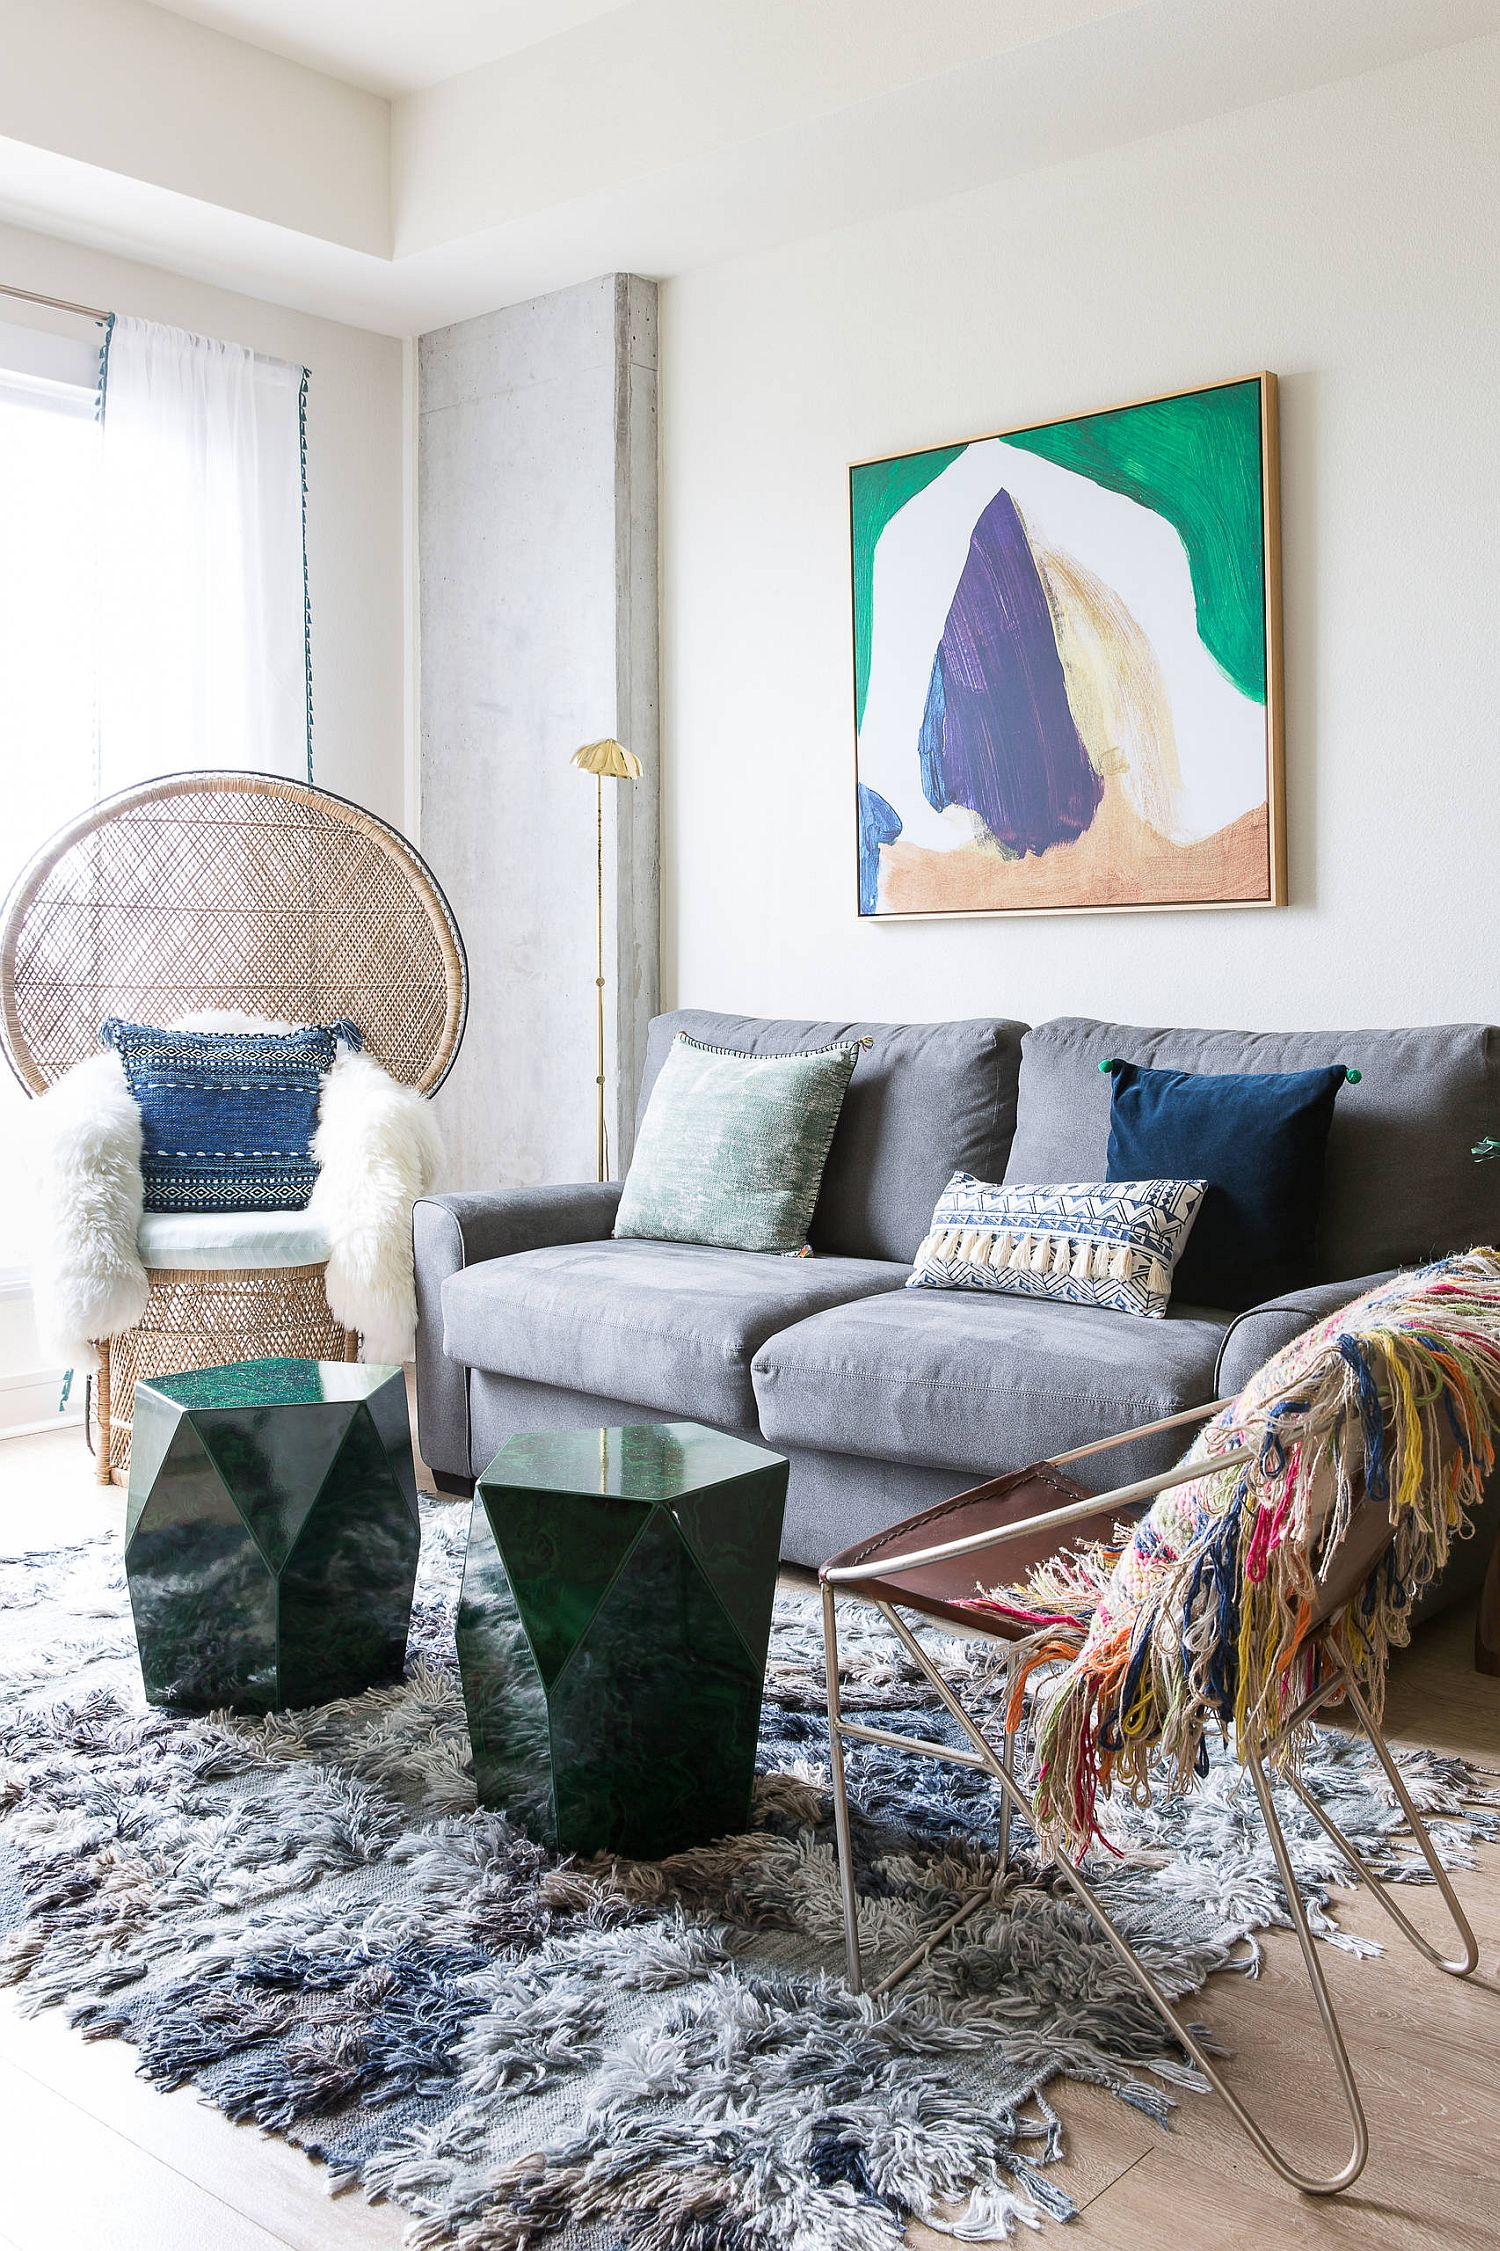 Sculptural side tables and the Peacock chair take a place of prominence in this living room